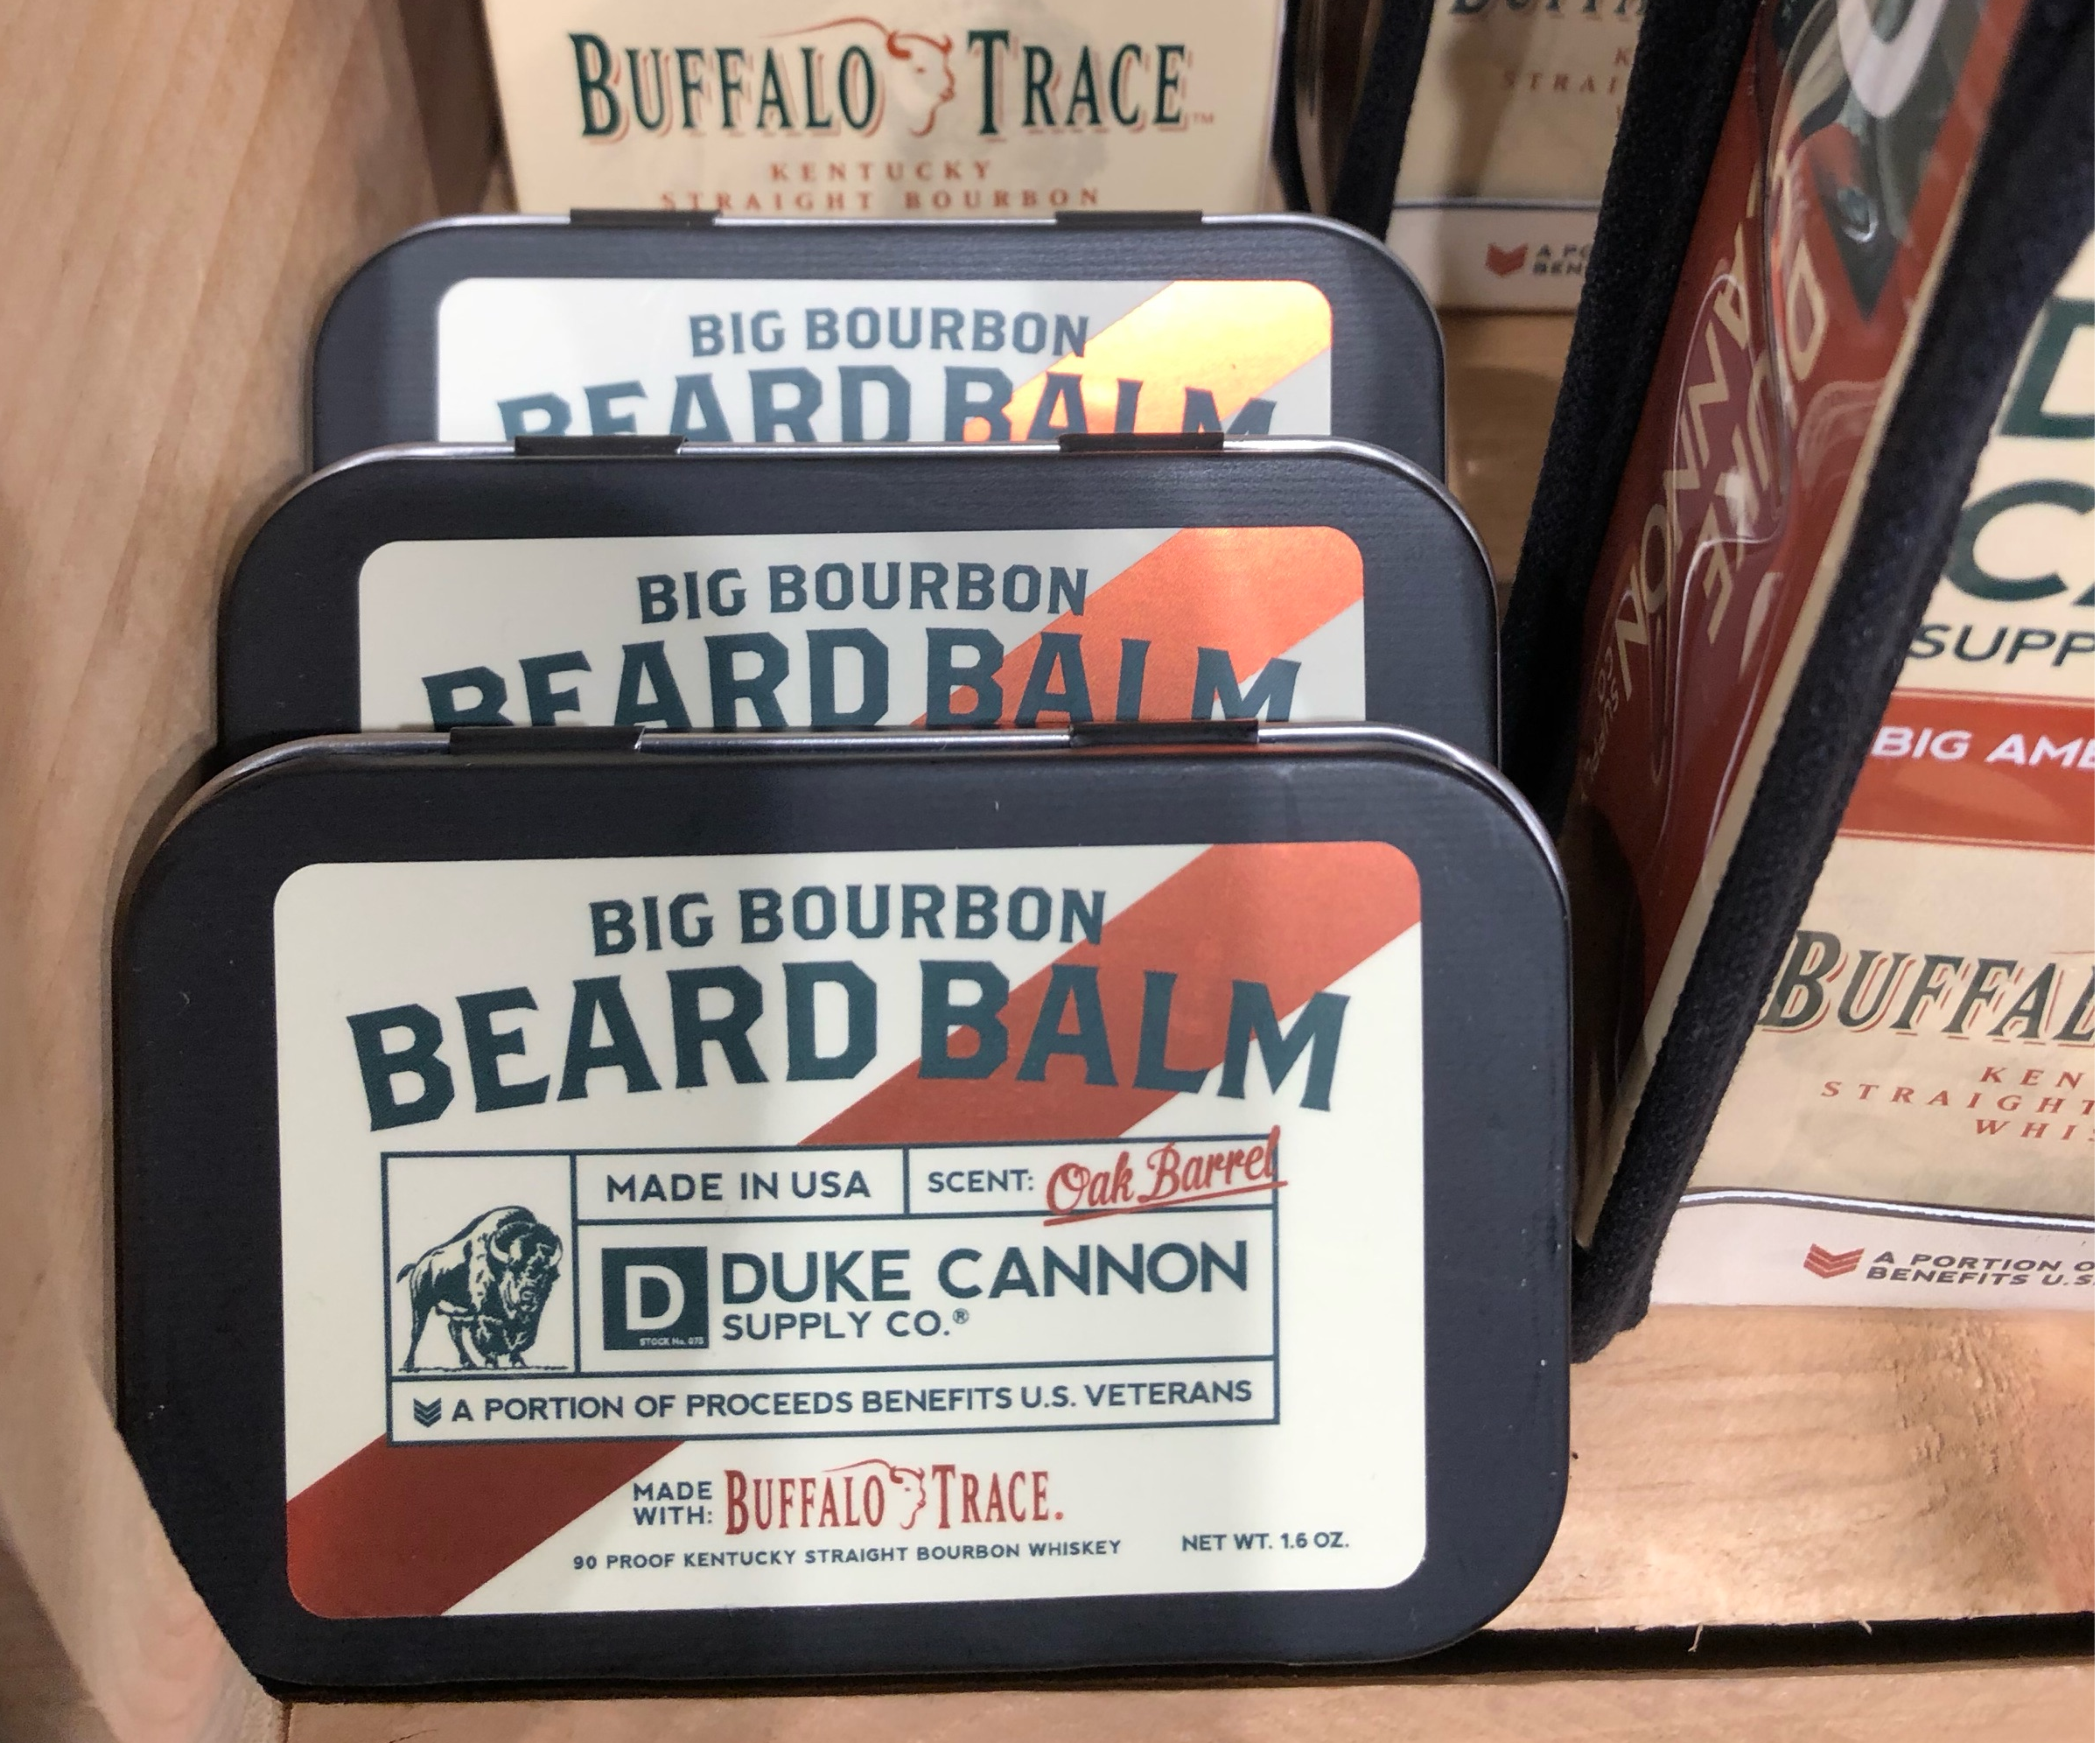 Duke Cannon, guy gift, soap, face towels, body wipes, beard balm, lip balm, dad, shave cream, veterans